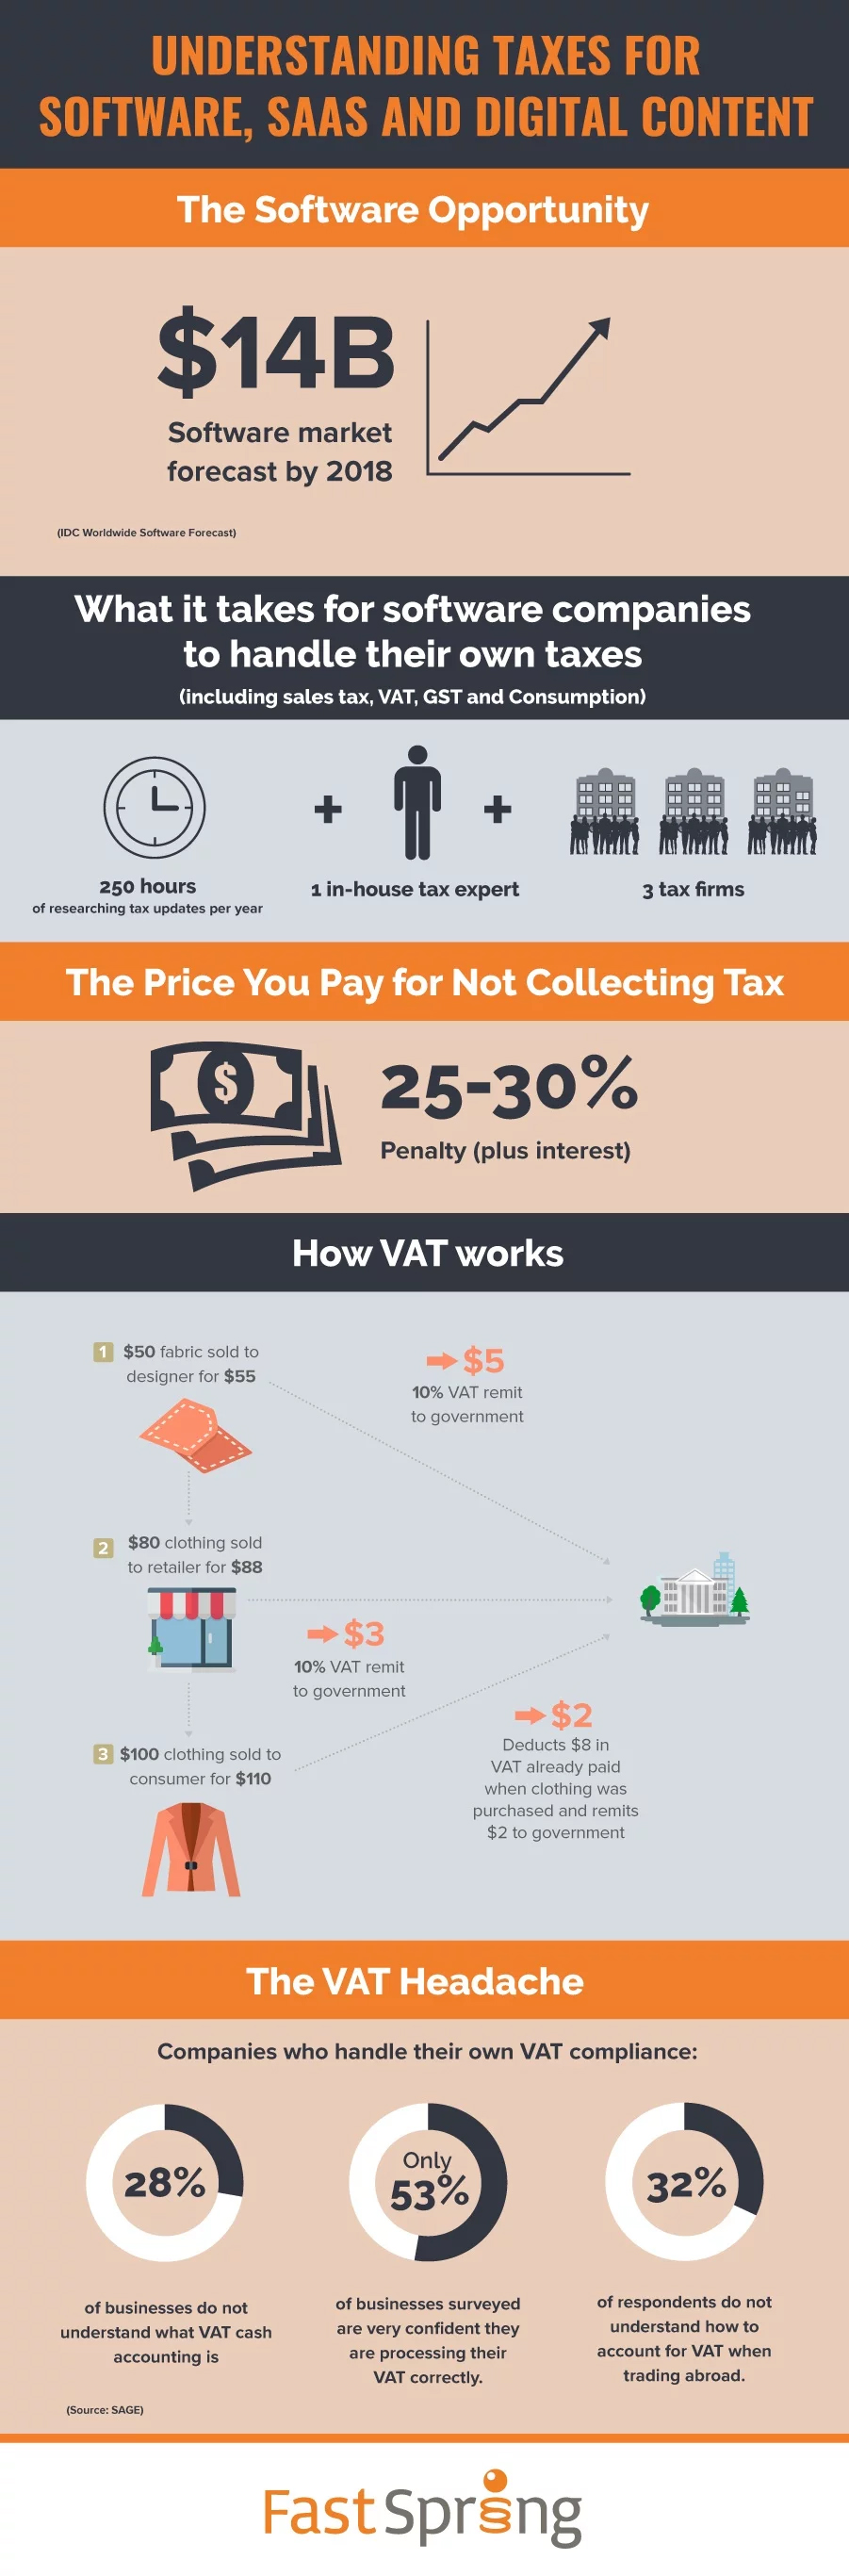 Fastspring Software, SaaS, and Digital Content Tax Infographic